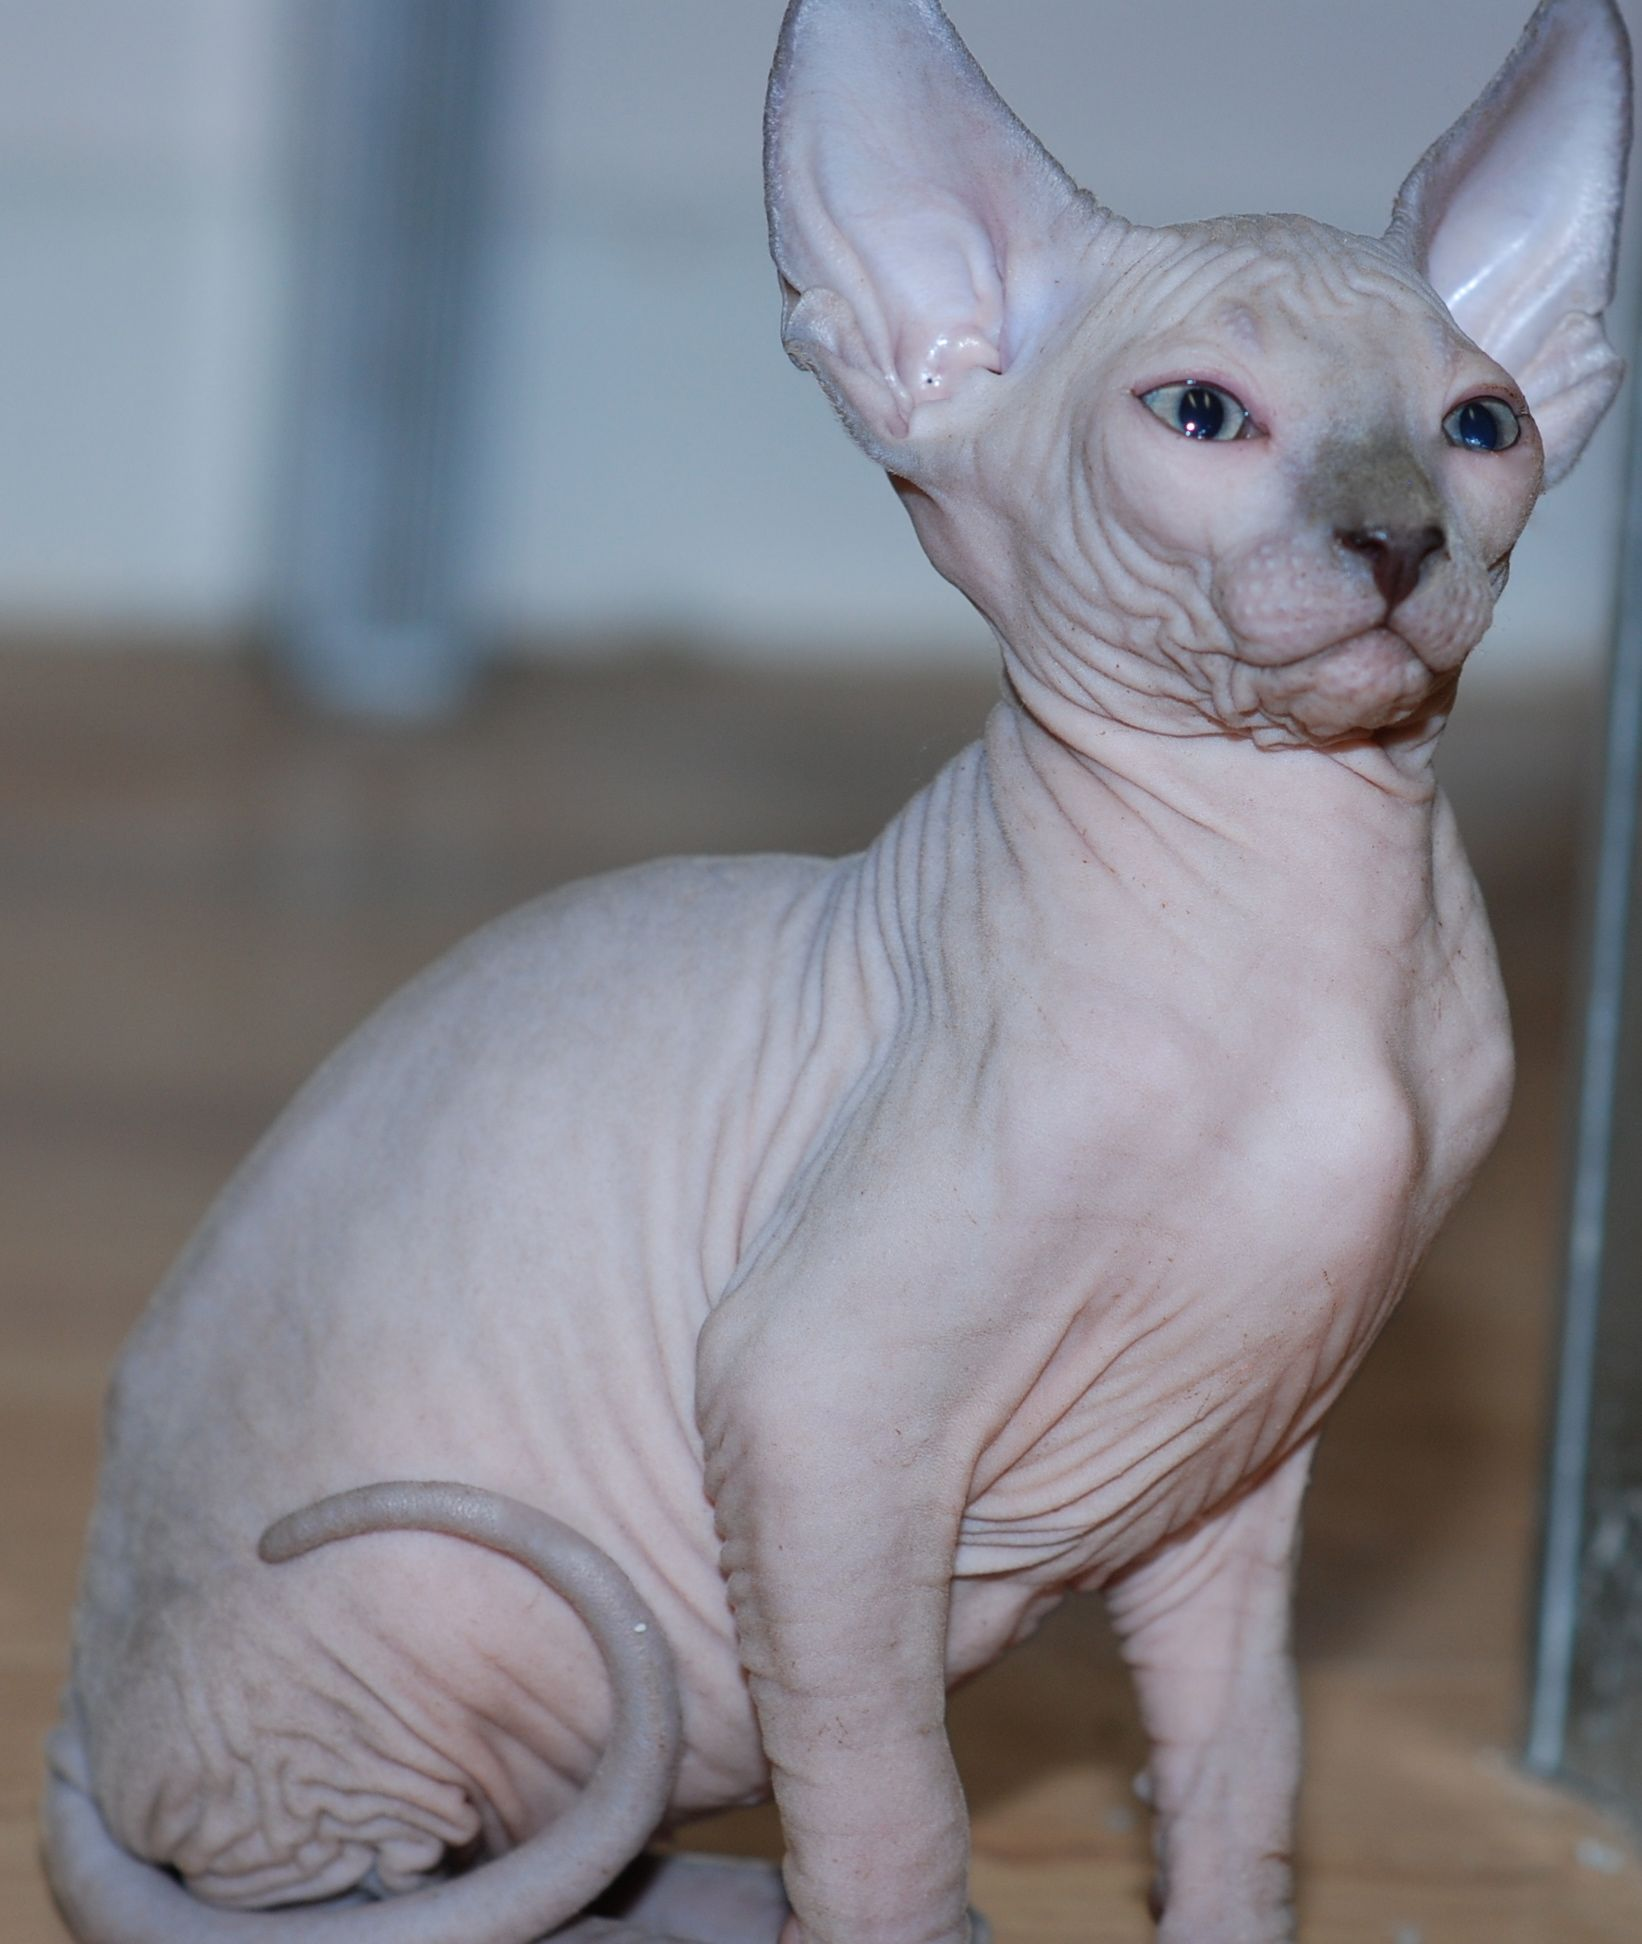 Jesse Said I Can Get One I M Obsessed With Sphynx Cats Hairless Kitten Cat Expressions Sphynx Cat